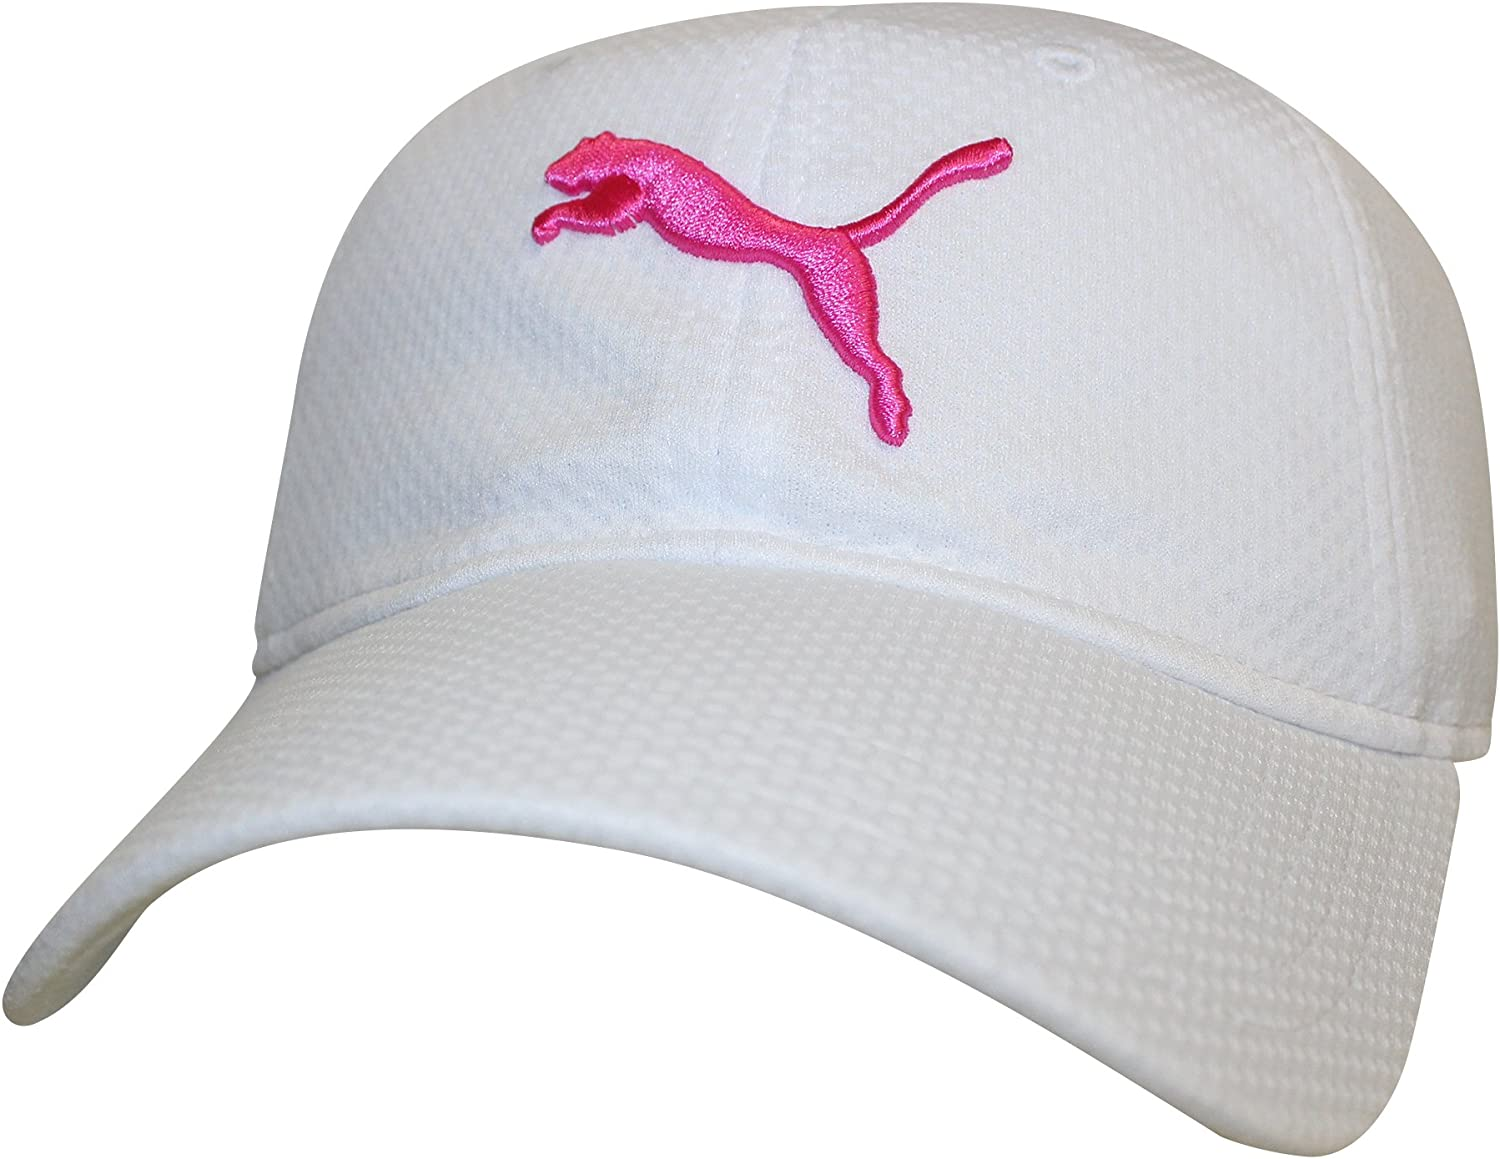 PUMA Womens Enola Relaxed Mesh Cap, White/Hot Pink, One Size ...